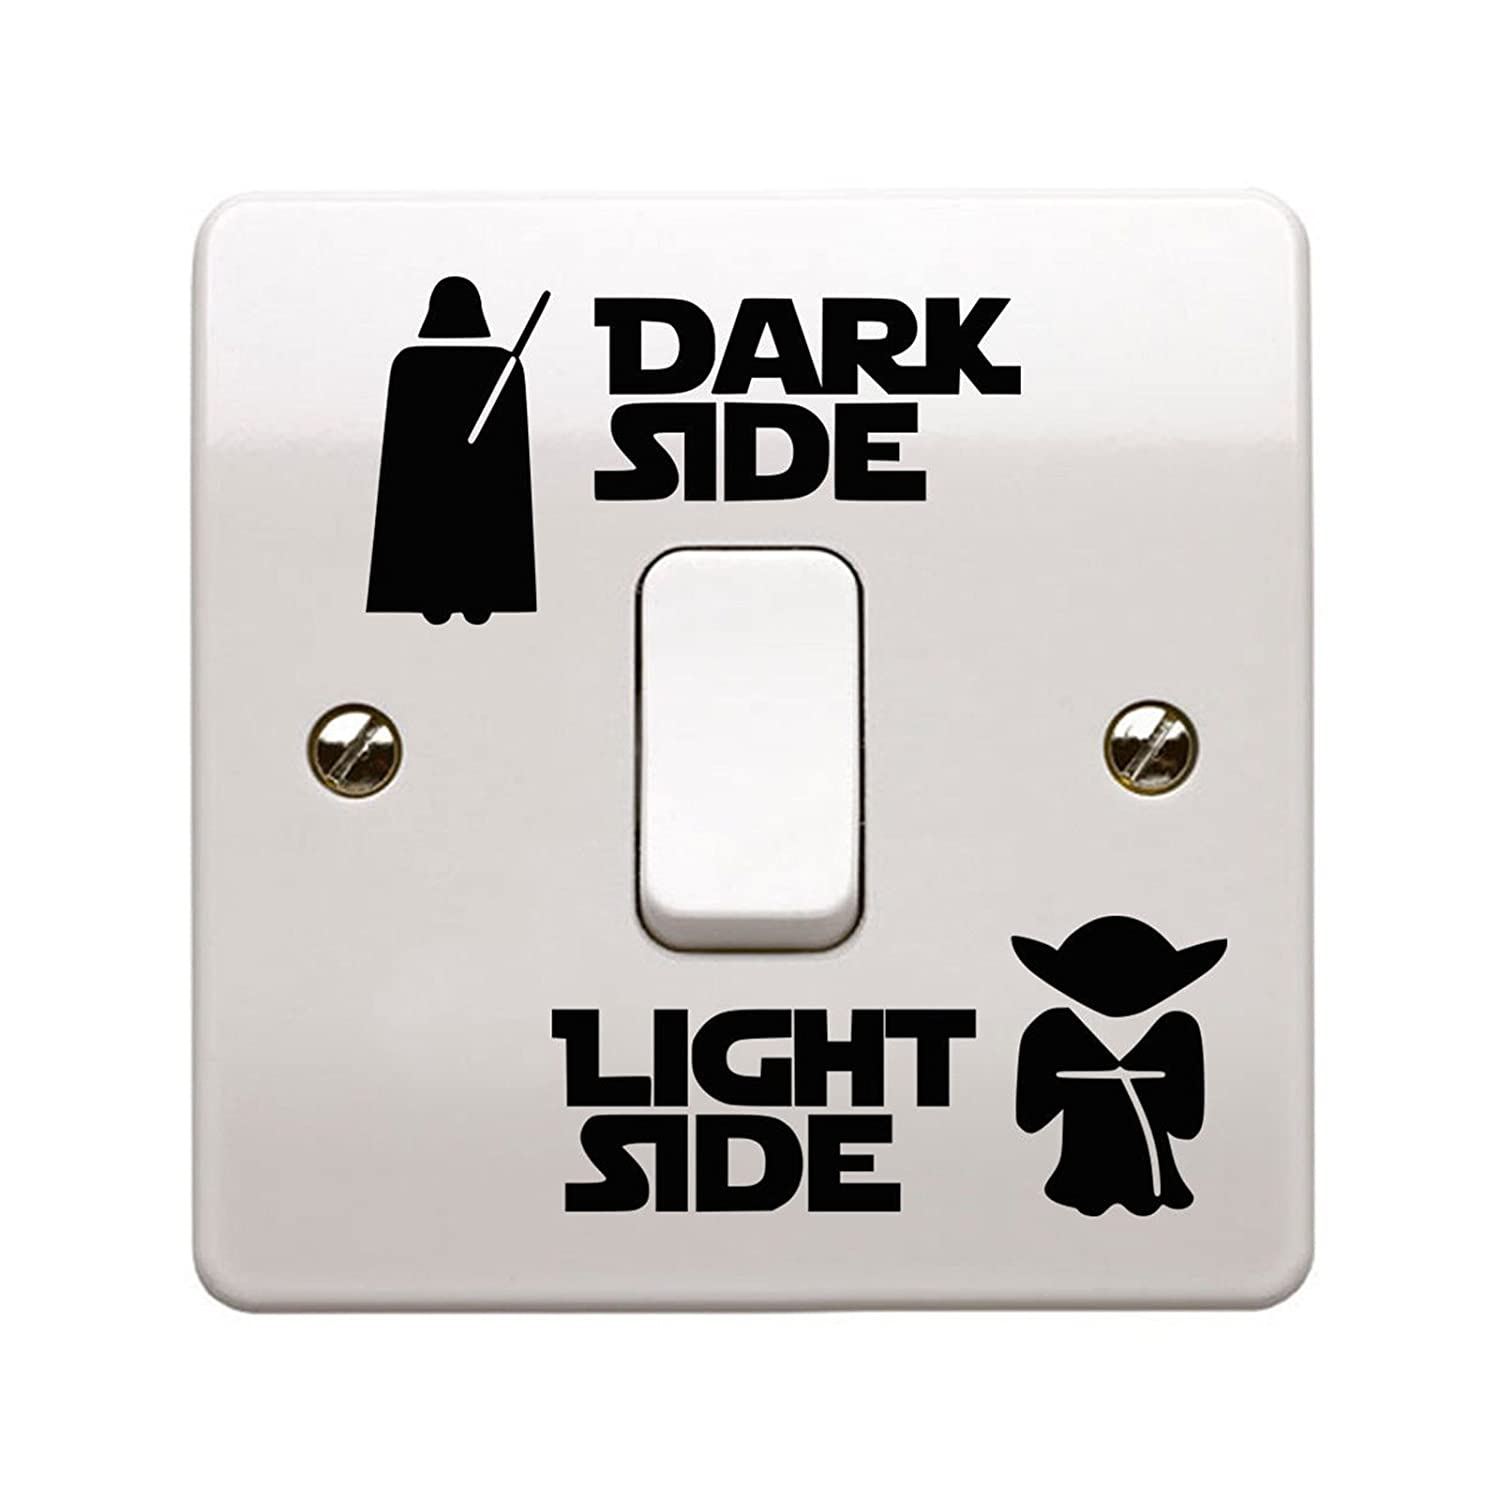 Dark Side Light Side Light Switch Vinyl Decal Sticker